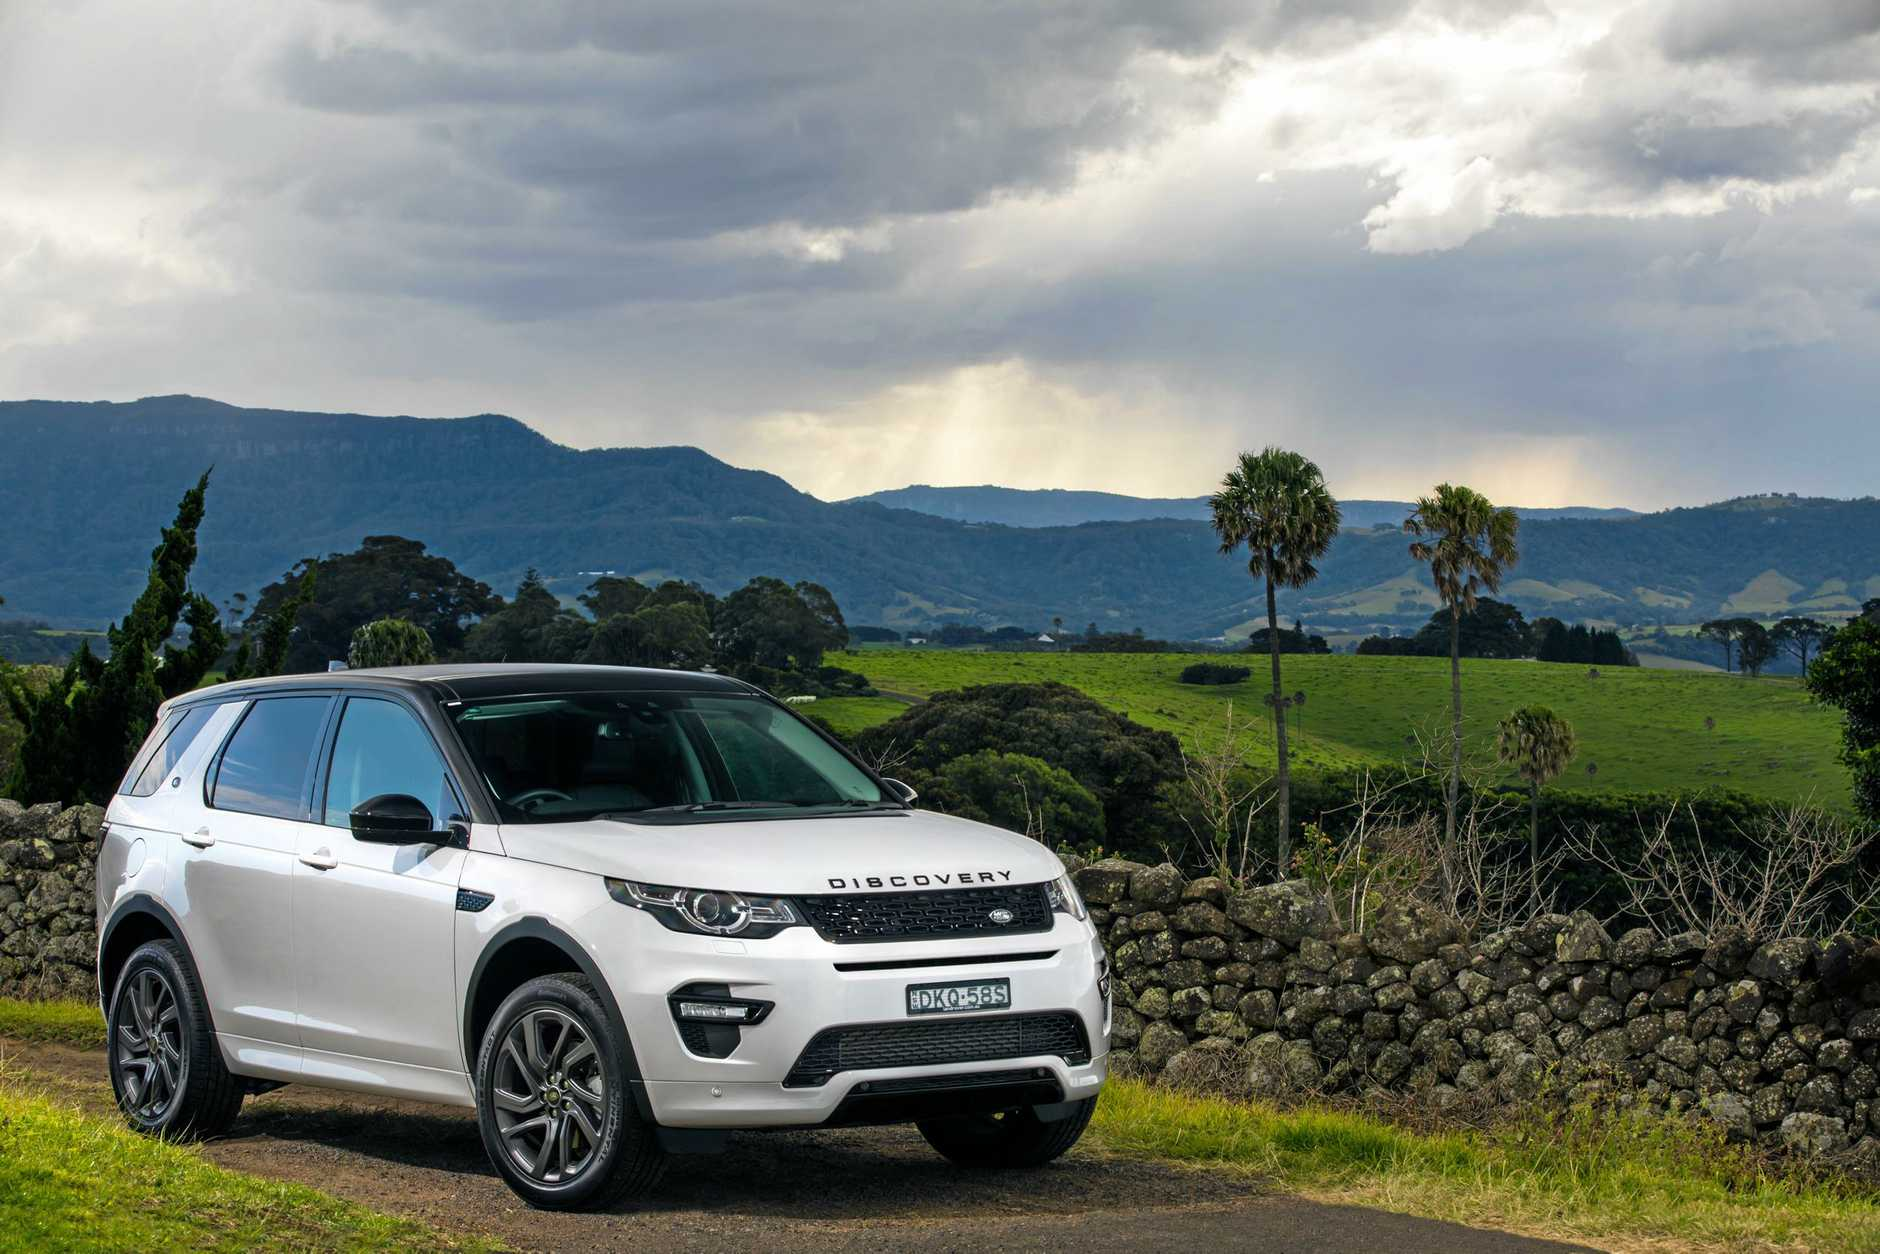 The Land Rover Discover Sport.